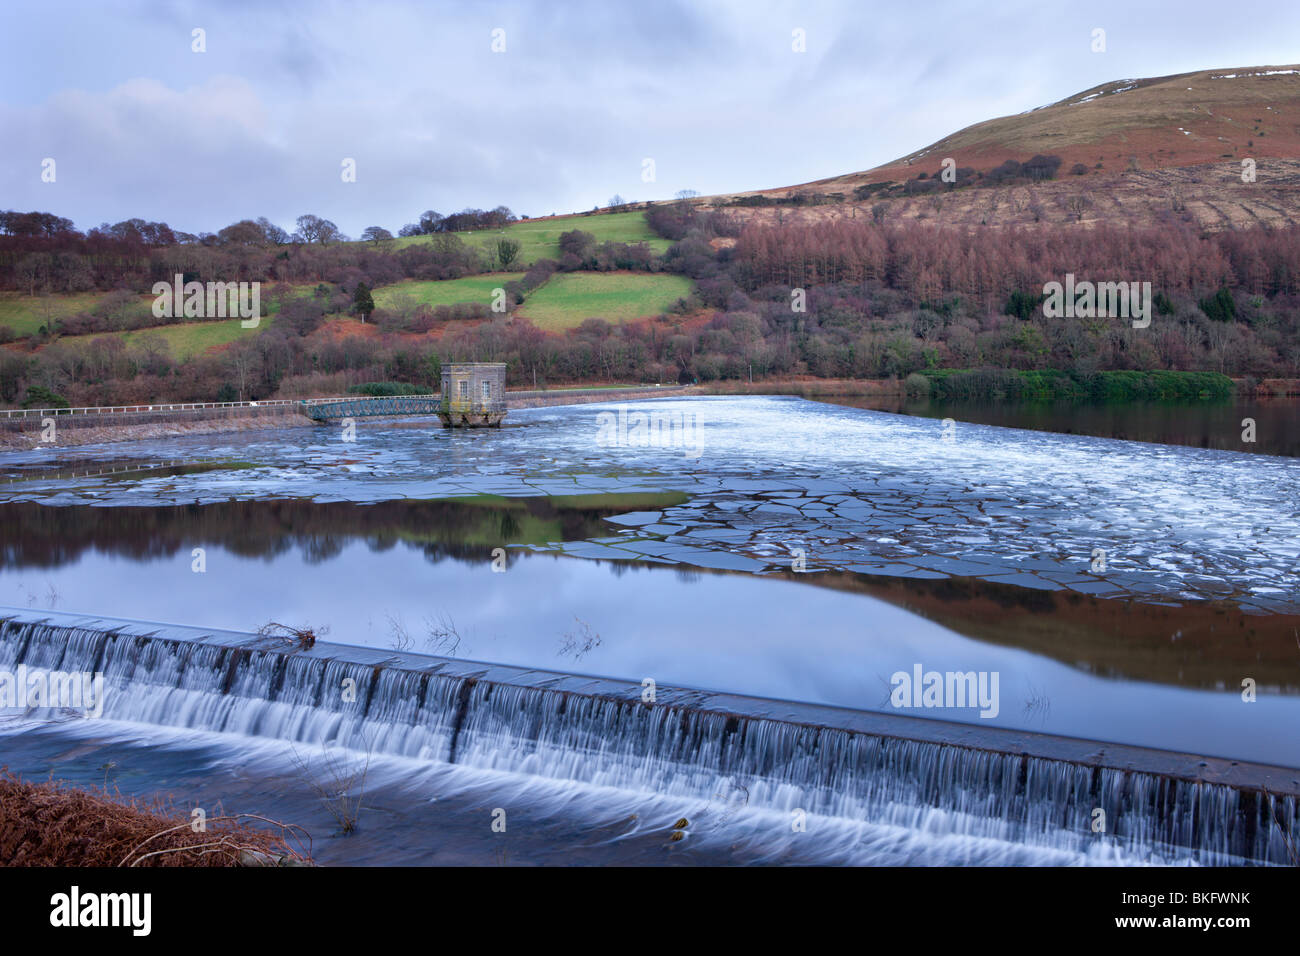 Broken ice floating on the surface of the Talybont Reservoir, Brecon Beacons National Park, Powys, Wales, UK. - Stock Image